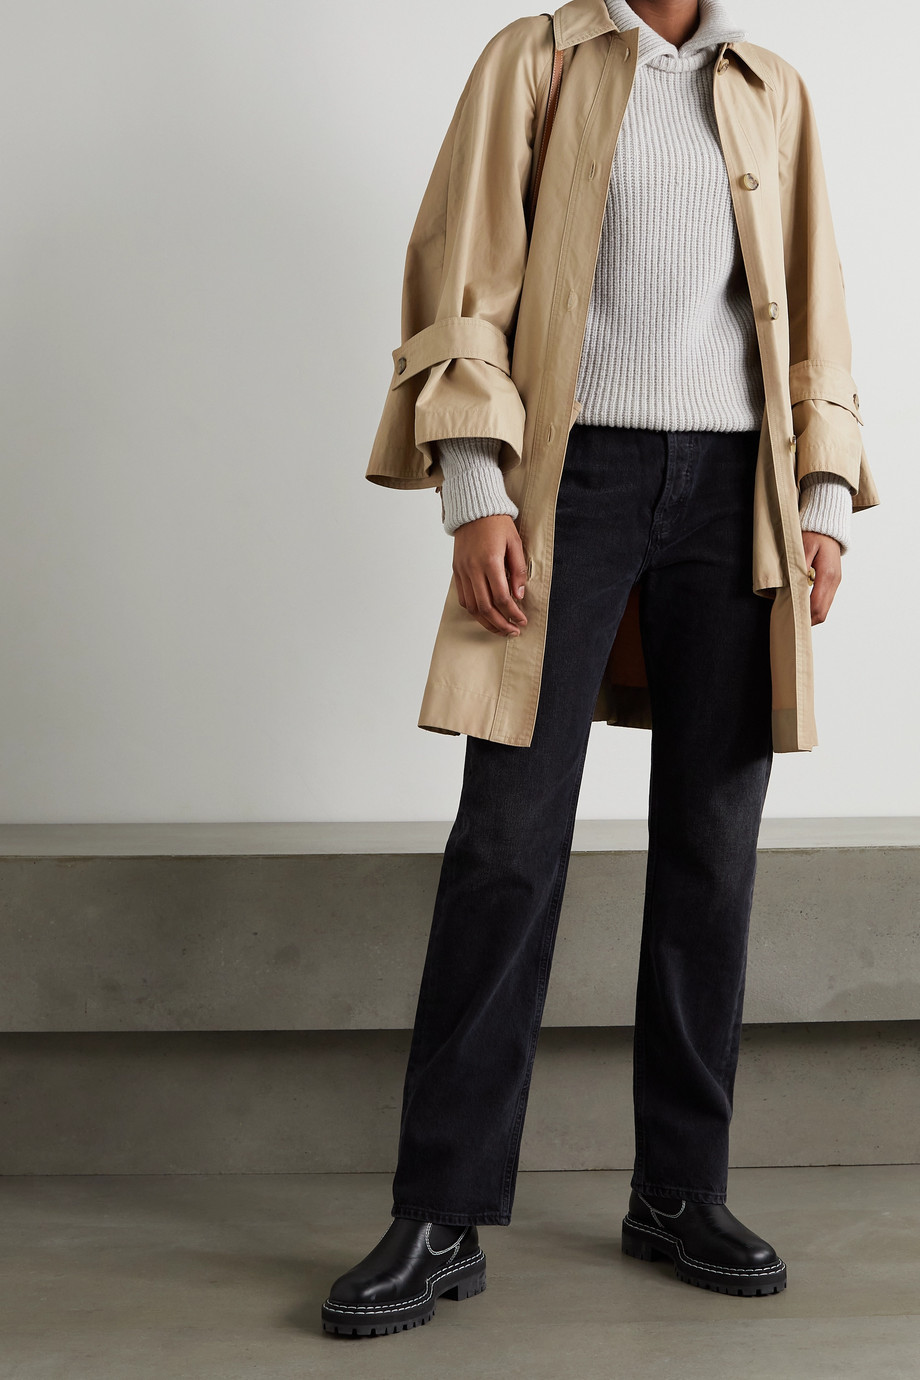 Moncler Genius + 1 JW Anderson Dungeness trench coat